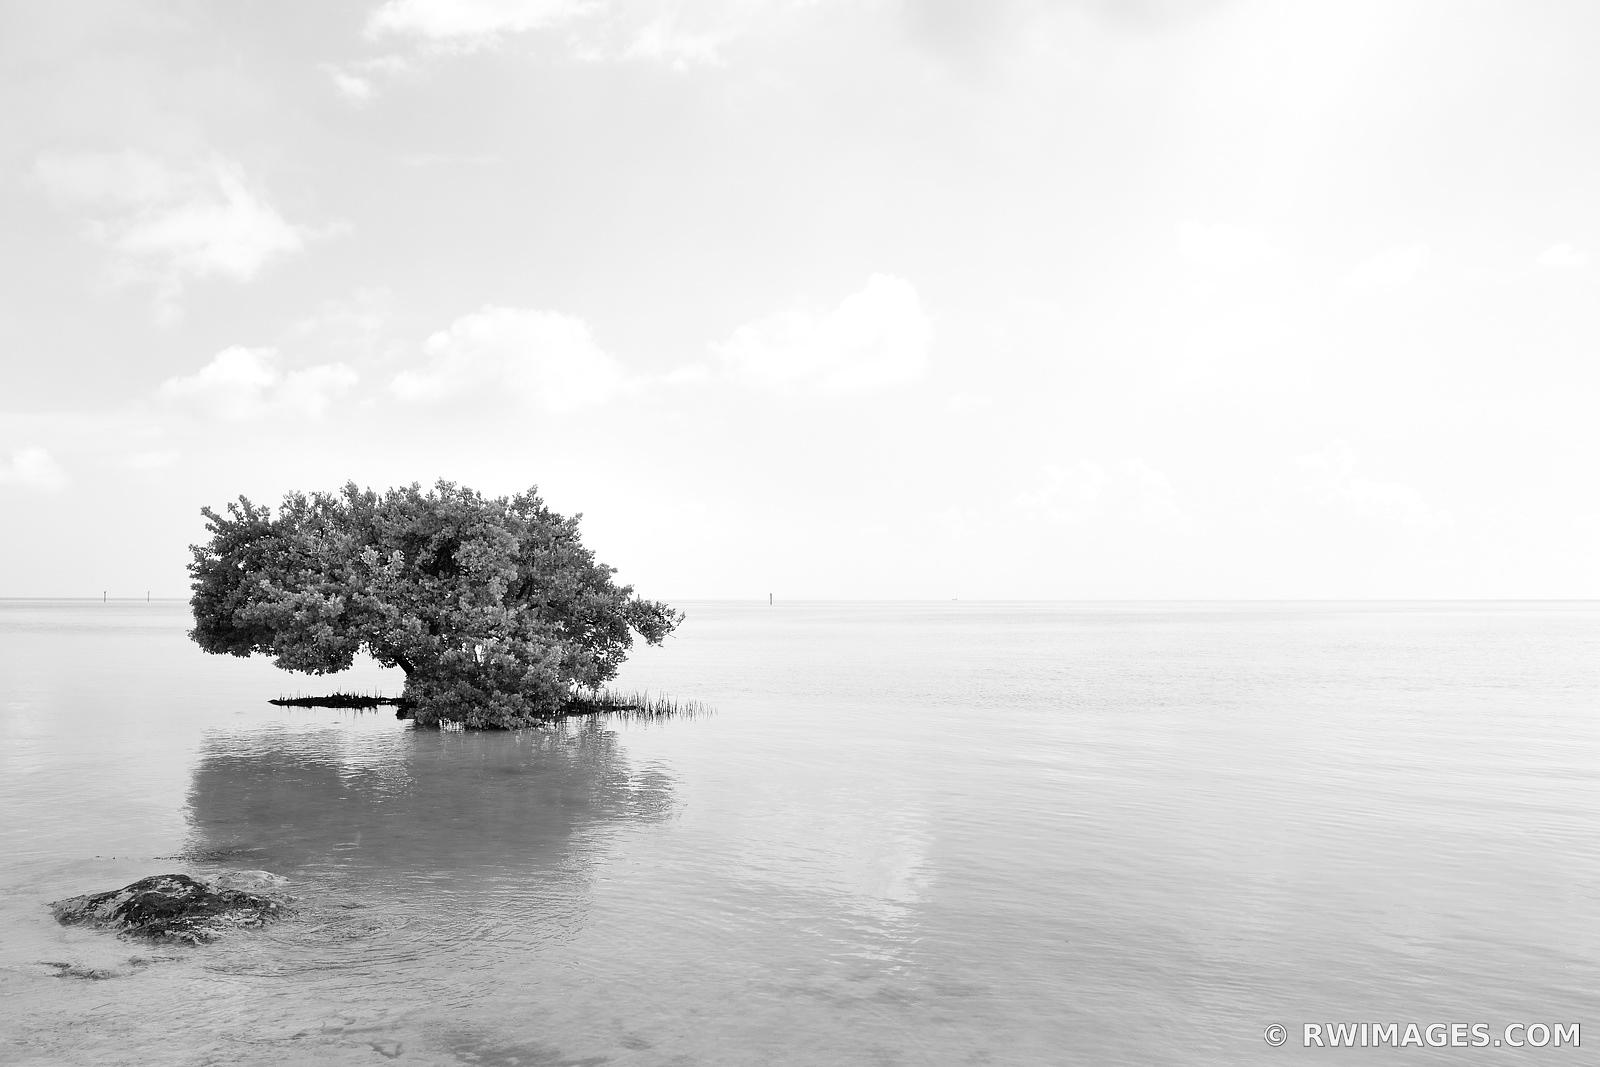 MANGROVE TREE AND THE OCEAN ANNE'S BEACH ISLAMORADA LOWER MATECUMBE KEY FLORIDA KEYS LANDSCAPE BLACK AND WHITE